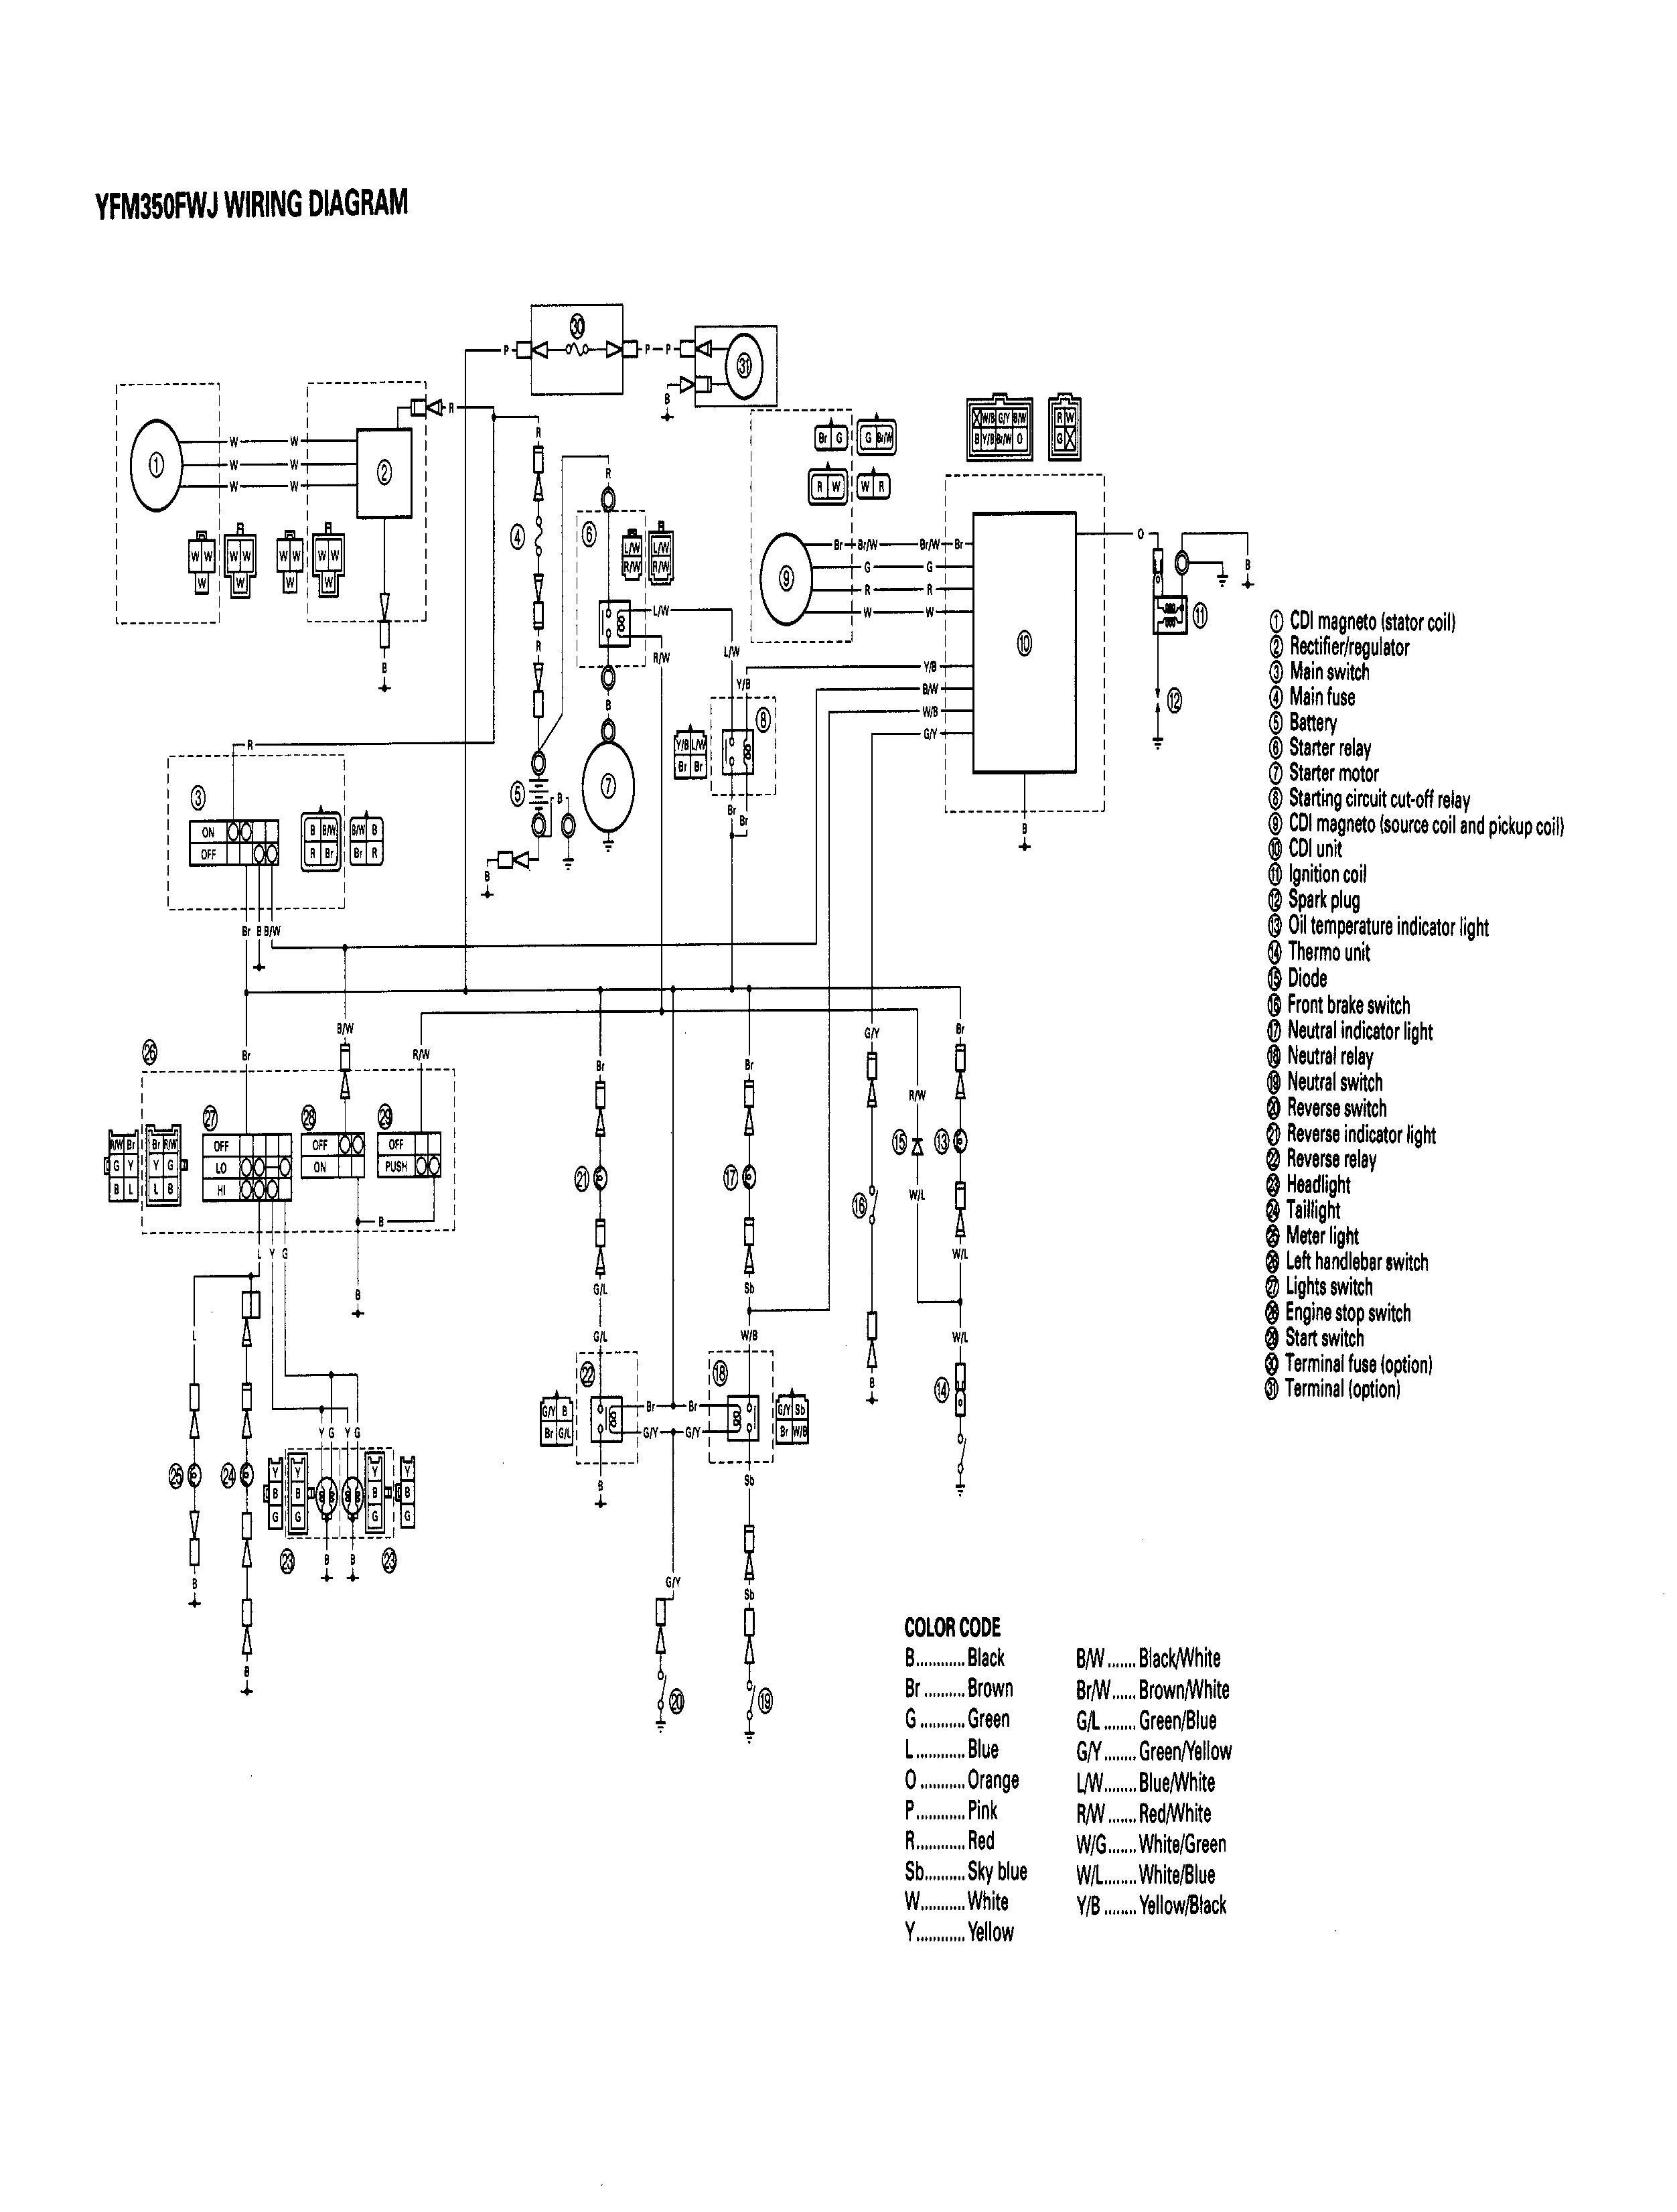 yamaha warrior 350 electric 1996 electrical diagram for battery to ignition 1996 bigbear 350 4x4 wiring - yamaha grizzly atv forum yamaha warrior 350 ignition switch wiring #4